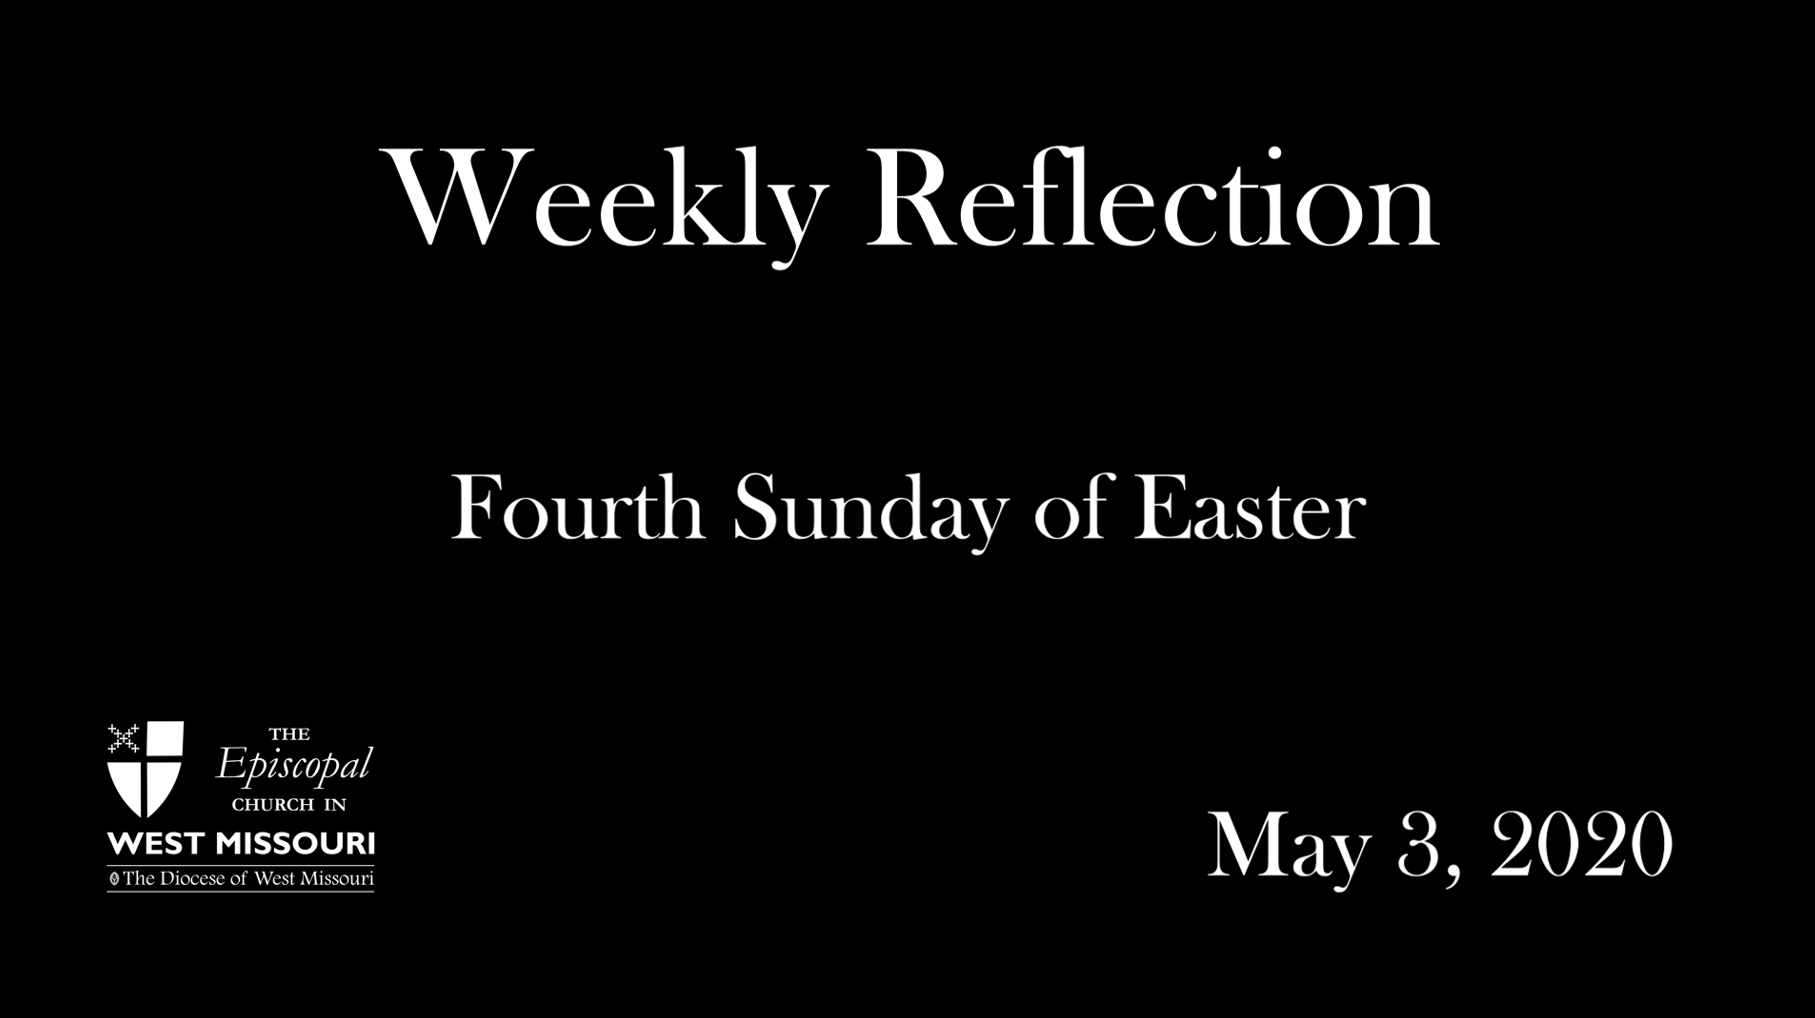 Weekly Reflection – Fourth Sunday of Easter